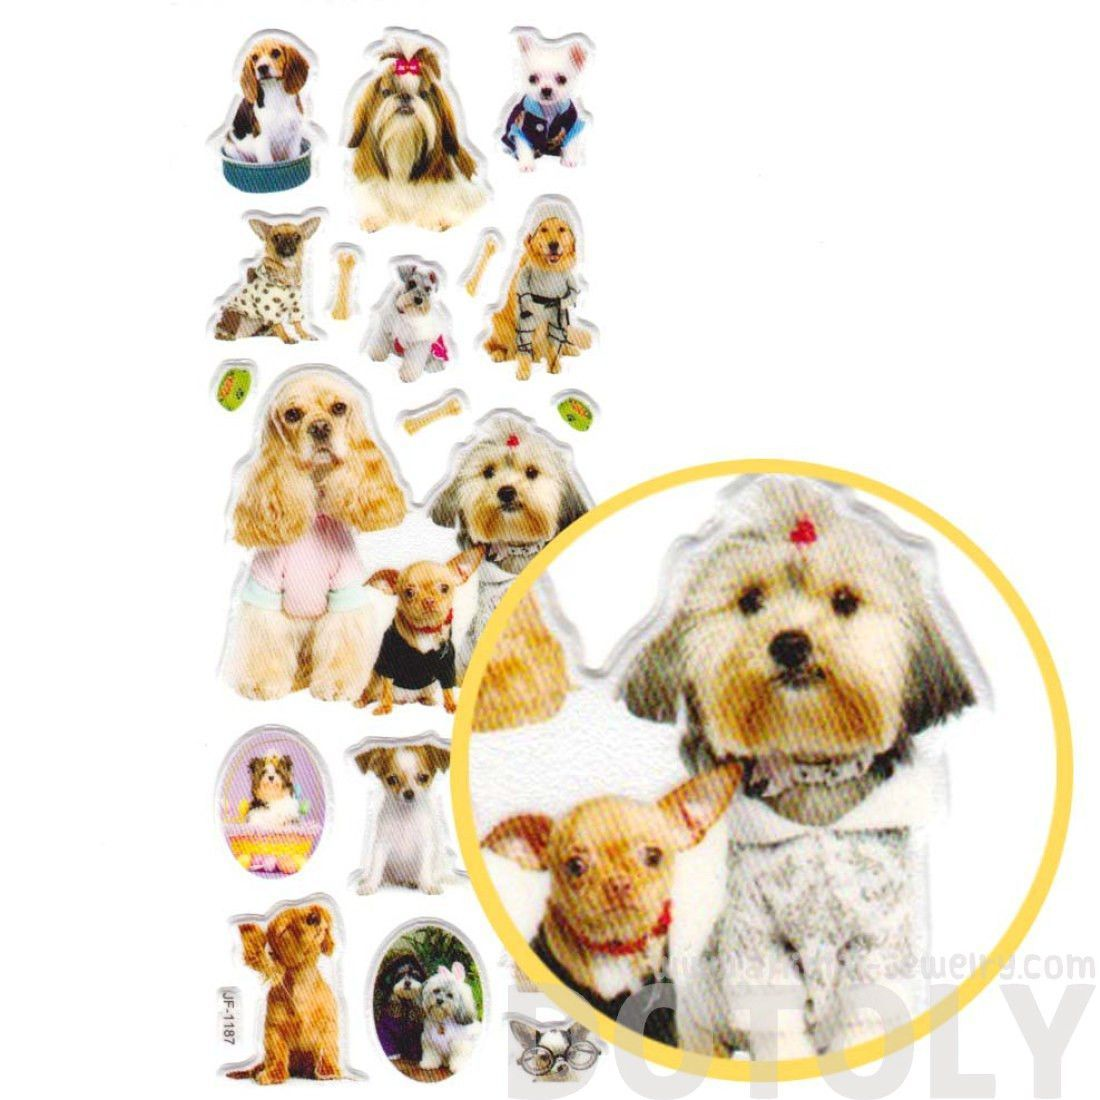 Realistic Puppy Dogs in Funny Costumes Shaped Animal Photo Stickers for Decorating